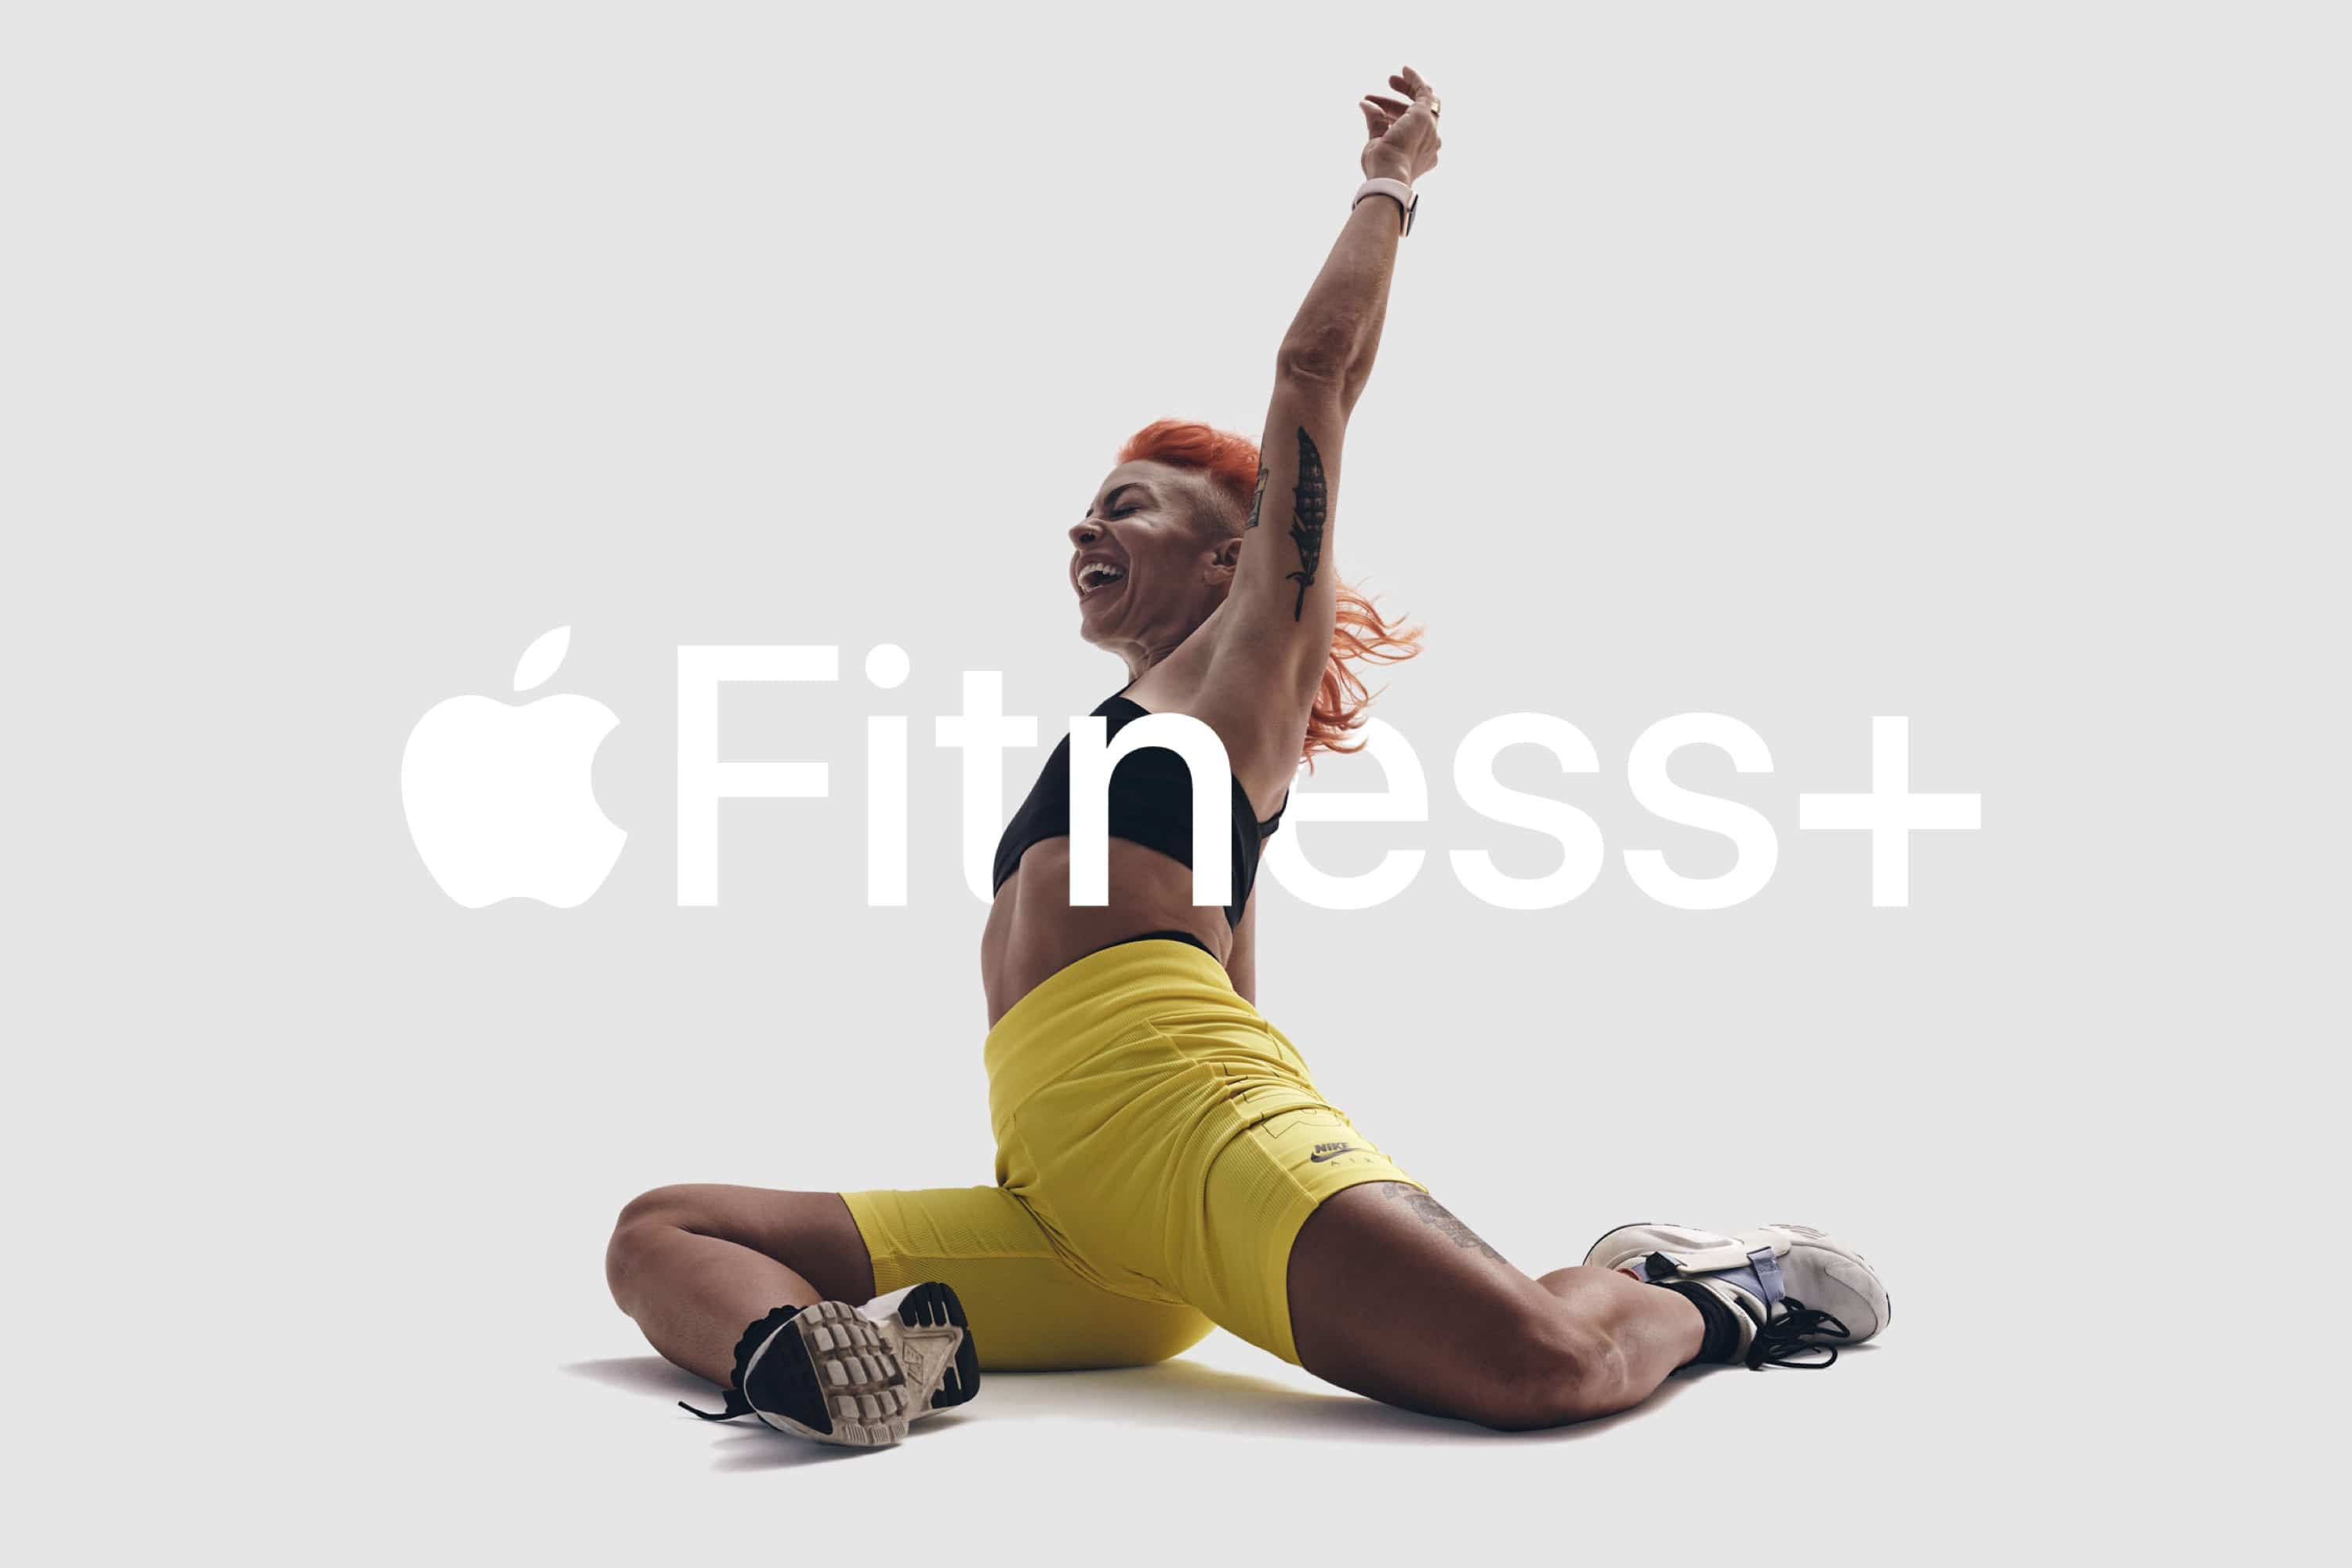 apple-online-store-promotes-fitness-gear-ahead-of-fitness-launch-20201209-1